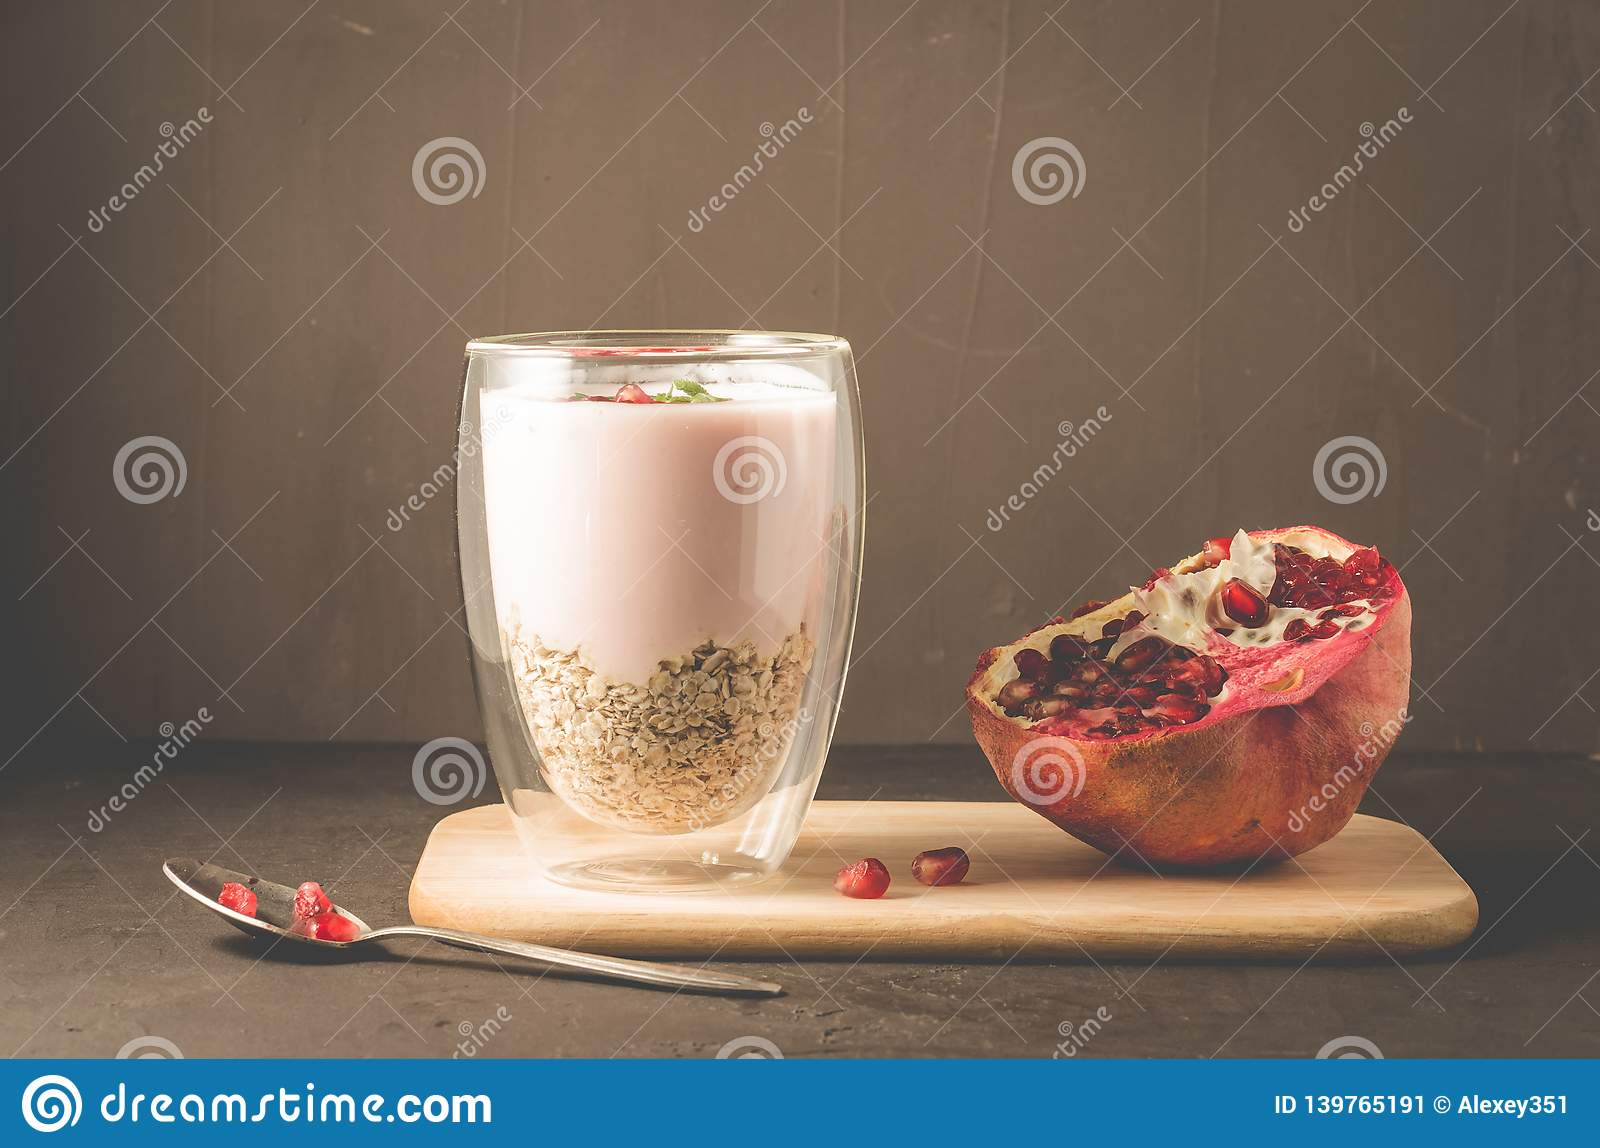 Yogurt. Yogurt with cereals, garnet and mint in glass and pomegranate fruit on a wooden tray. Dark backgtound table. Selective